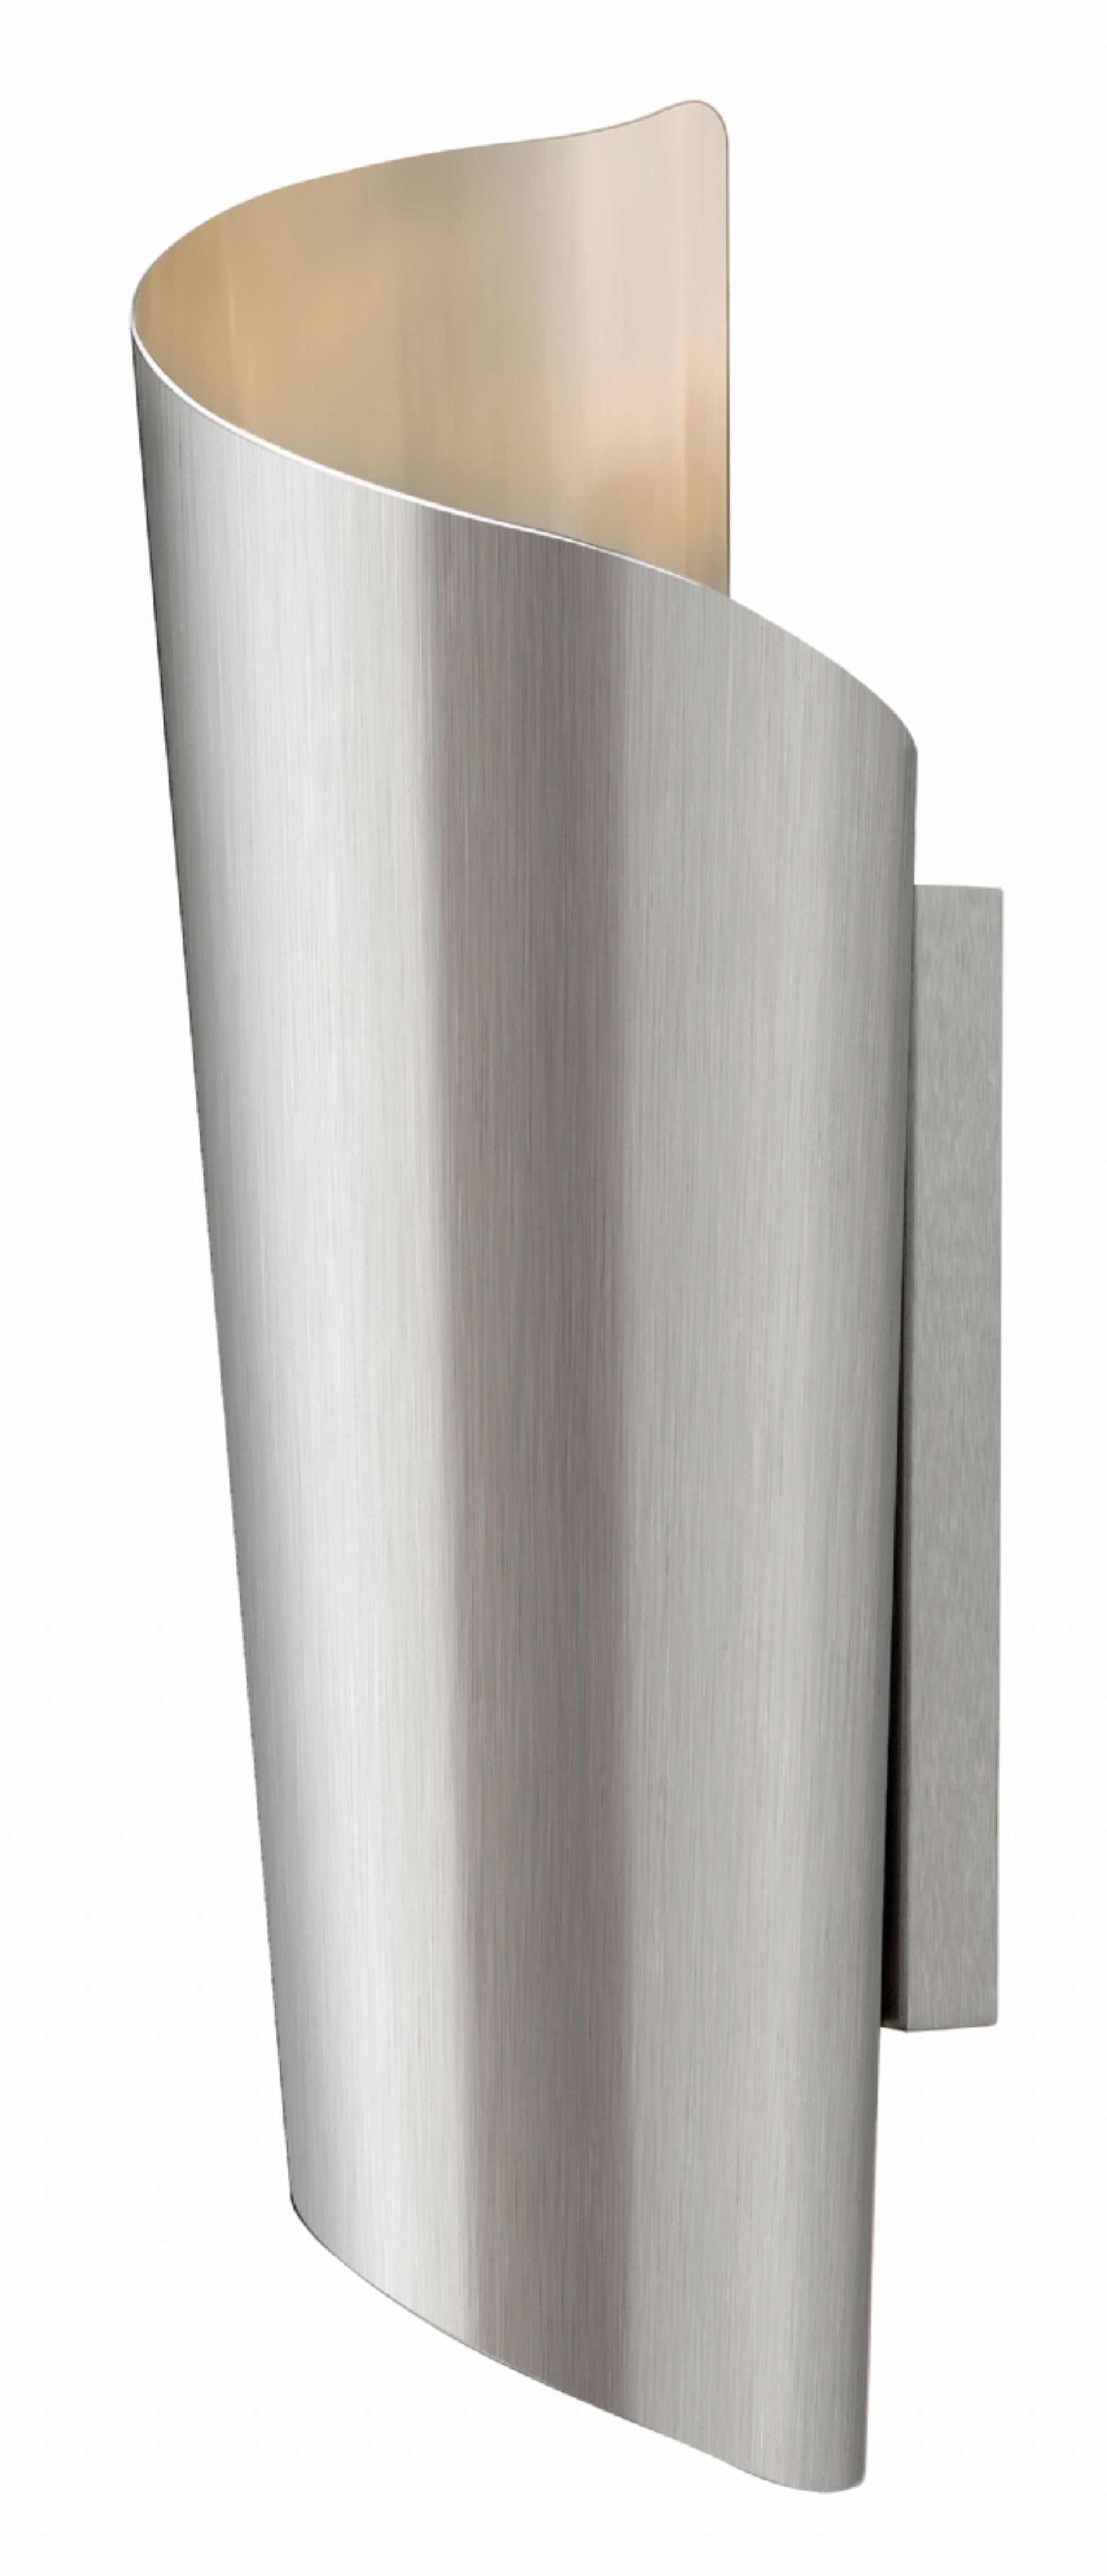 Stainless Steel Surf > Exterior Wall Mount With Modern Latern Hinkley Lighting (View 15 of 15)